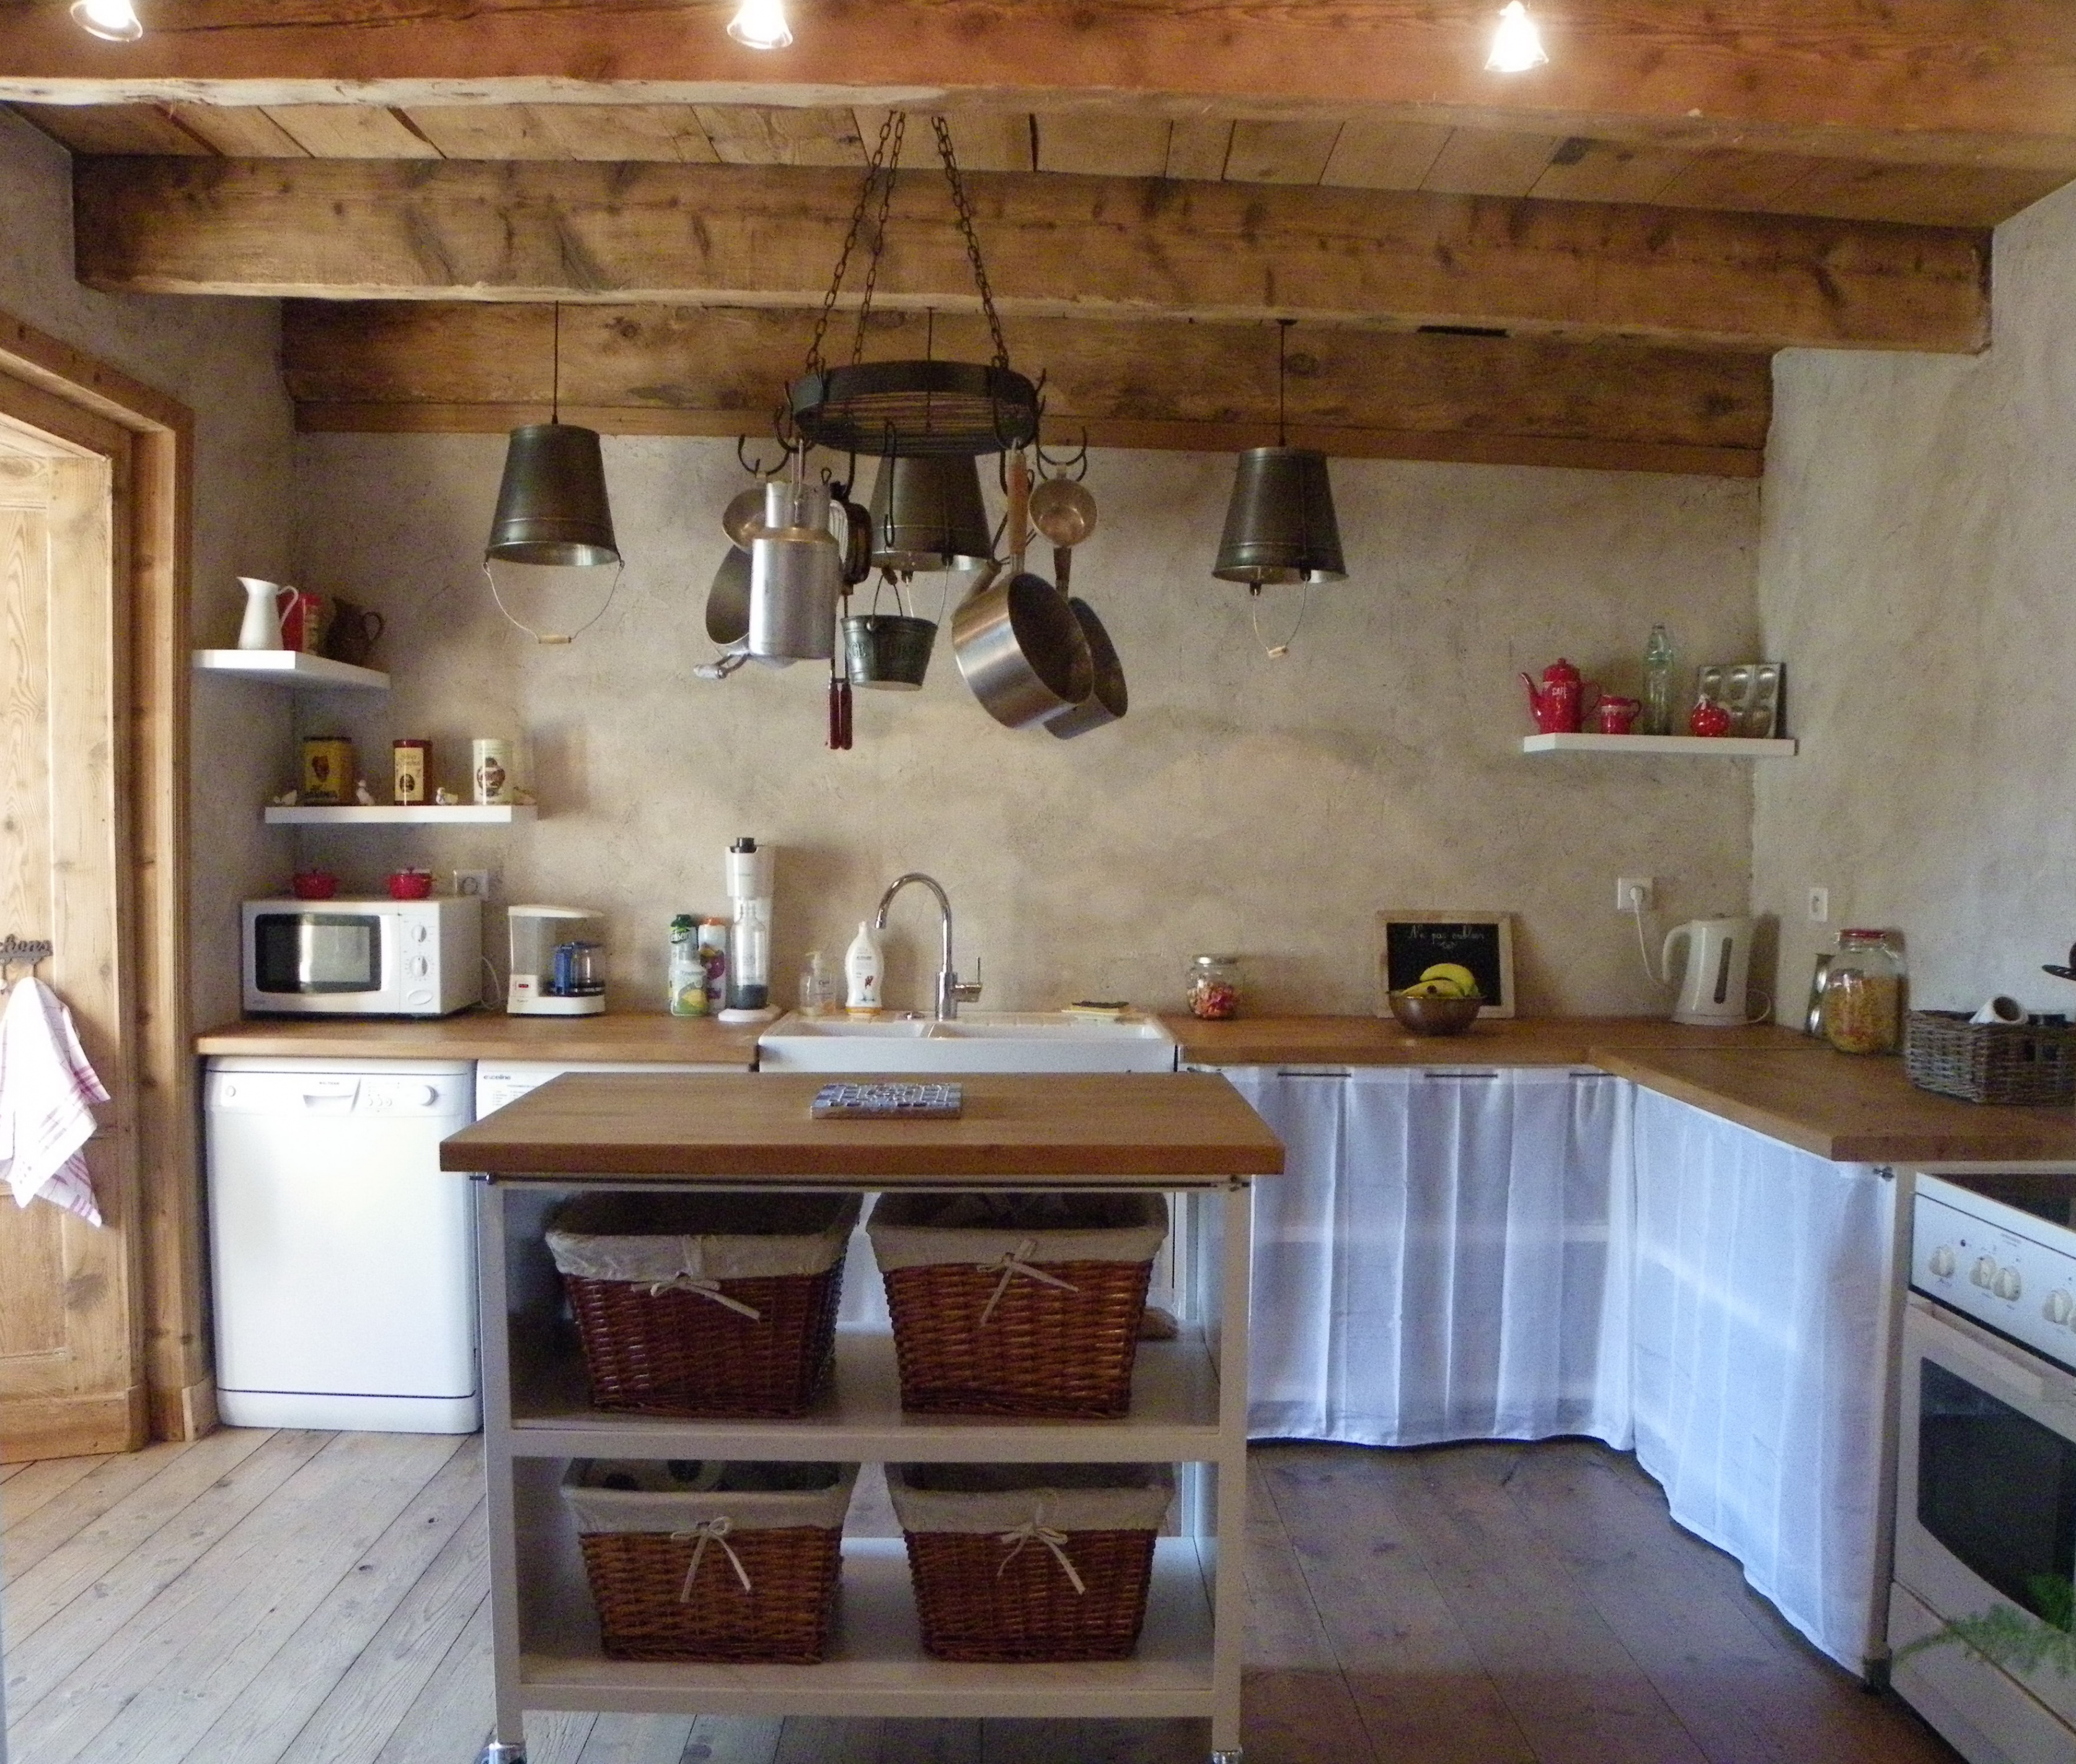 Cuisine Campagne Chic Cuisine Campagne Chic Best Deco Cuisine Campagne Chic